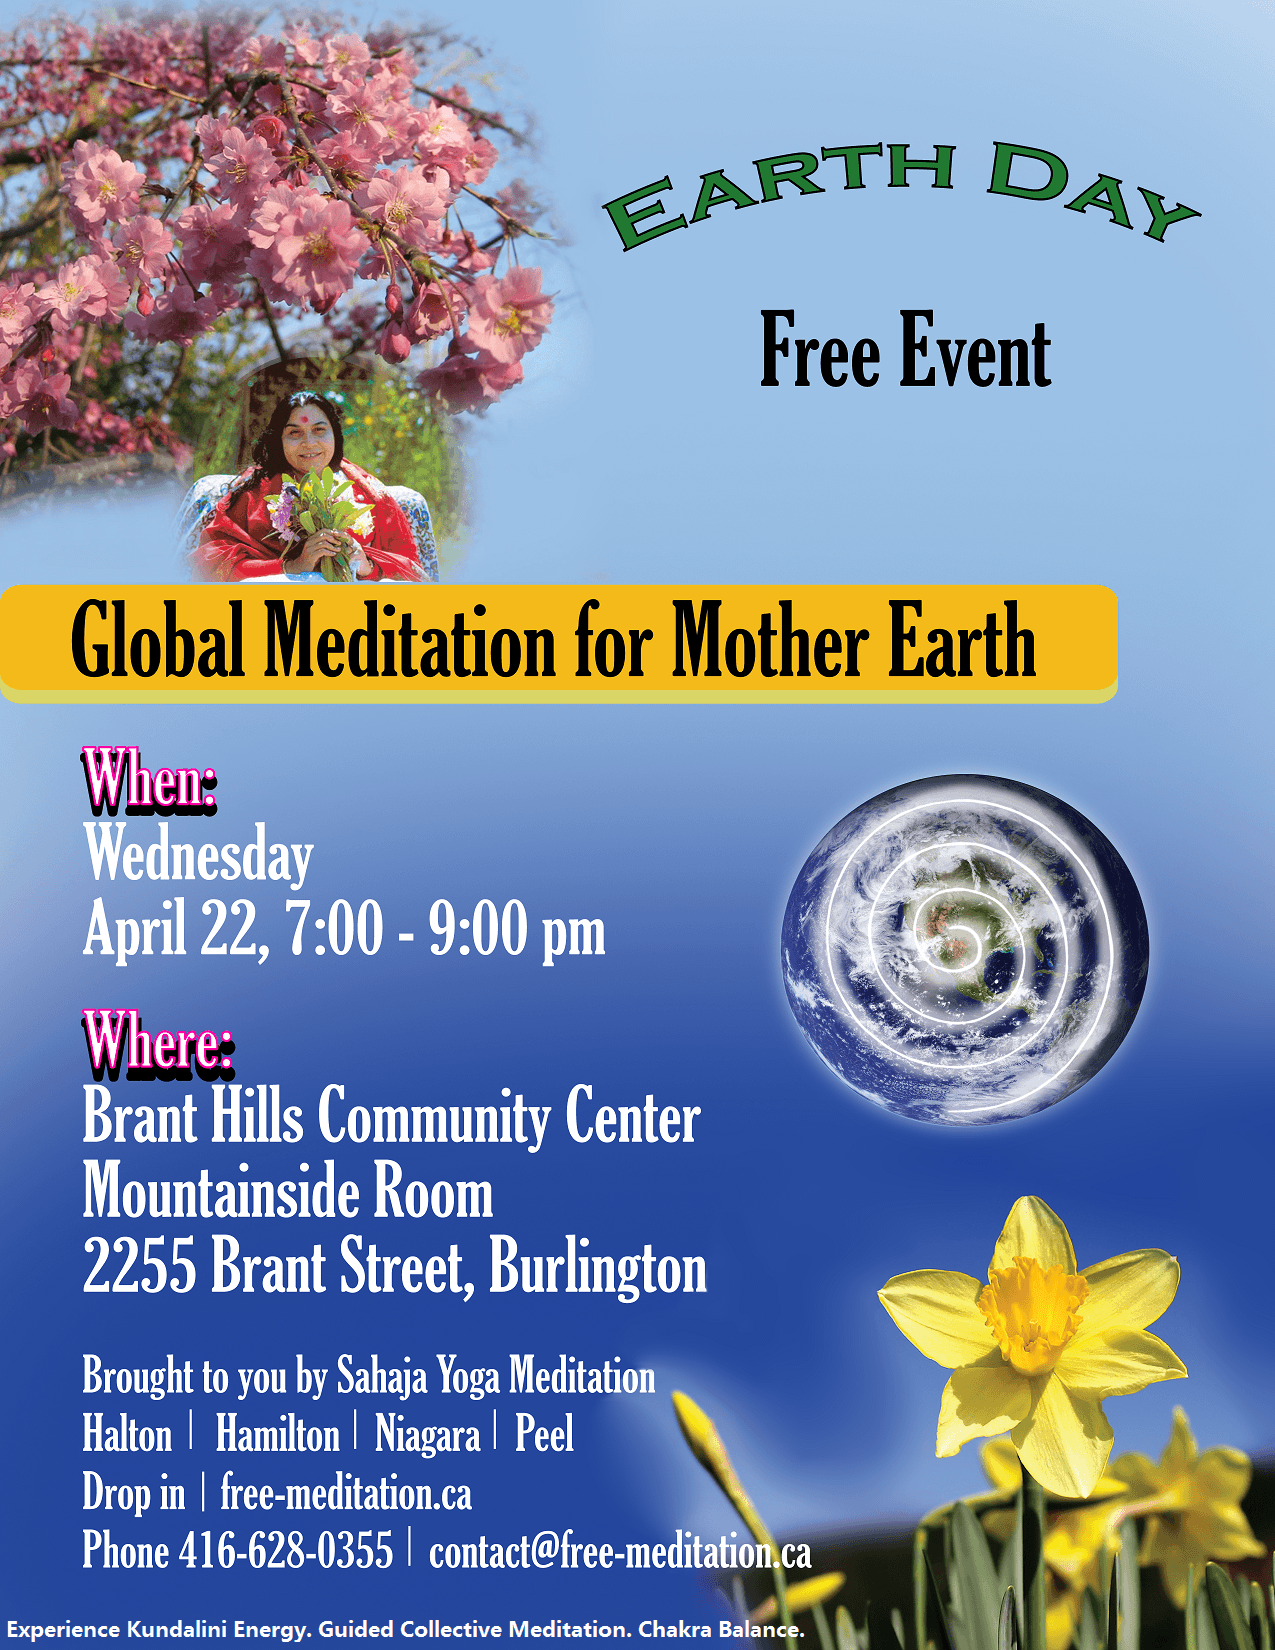 Celebrate Earth Day as Children Taking Wisdom from The Roots & FREE Public Program (Meditation Seminar)